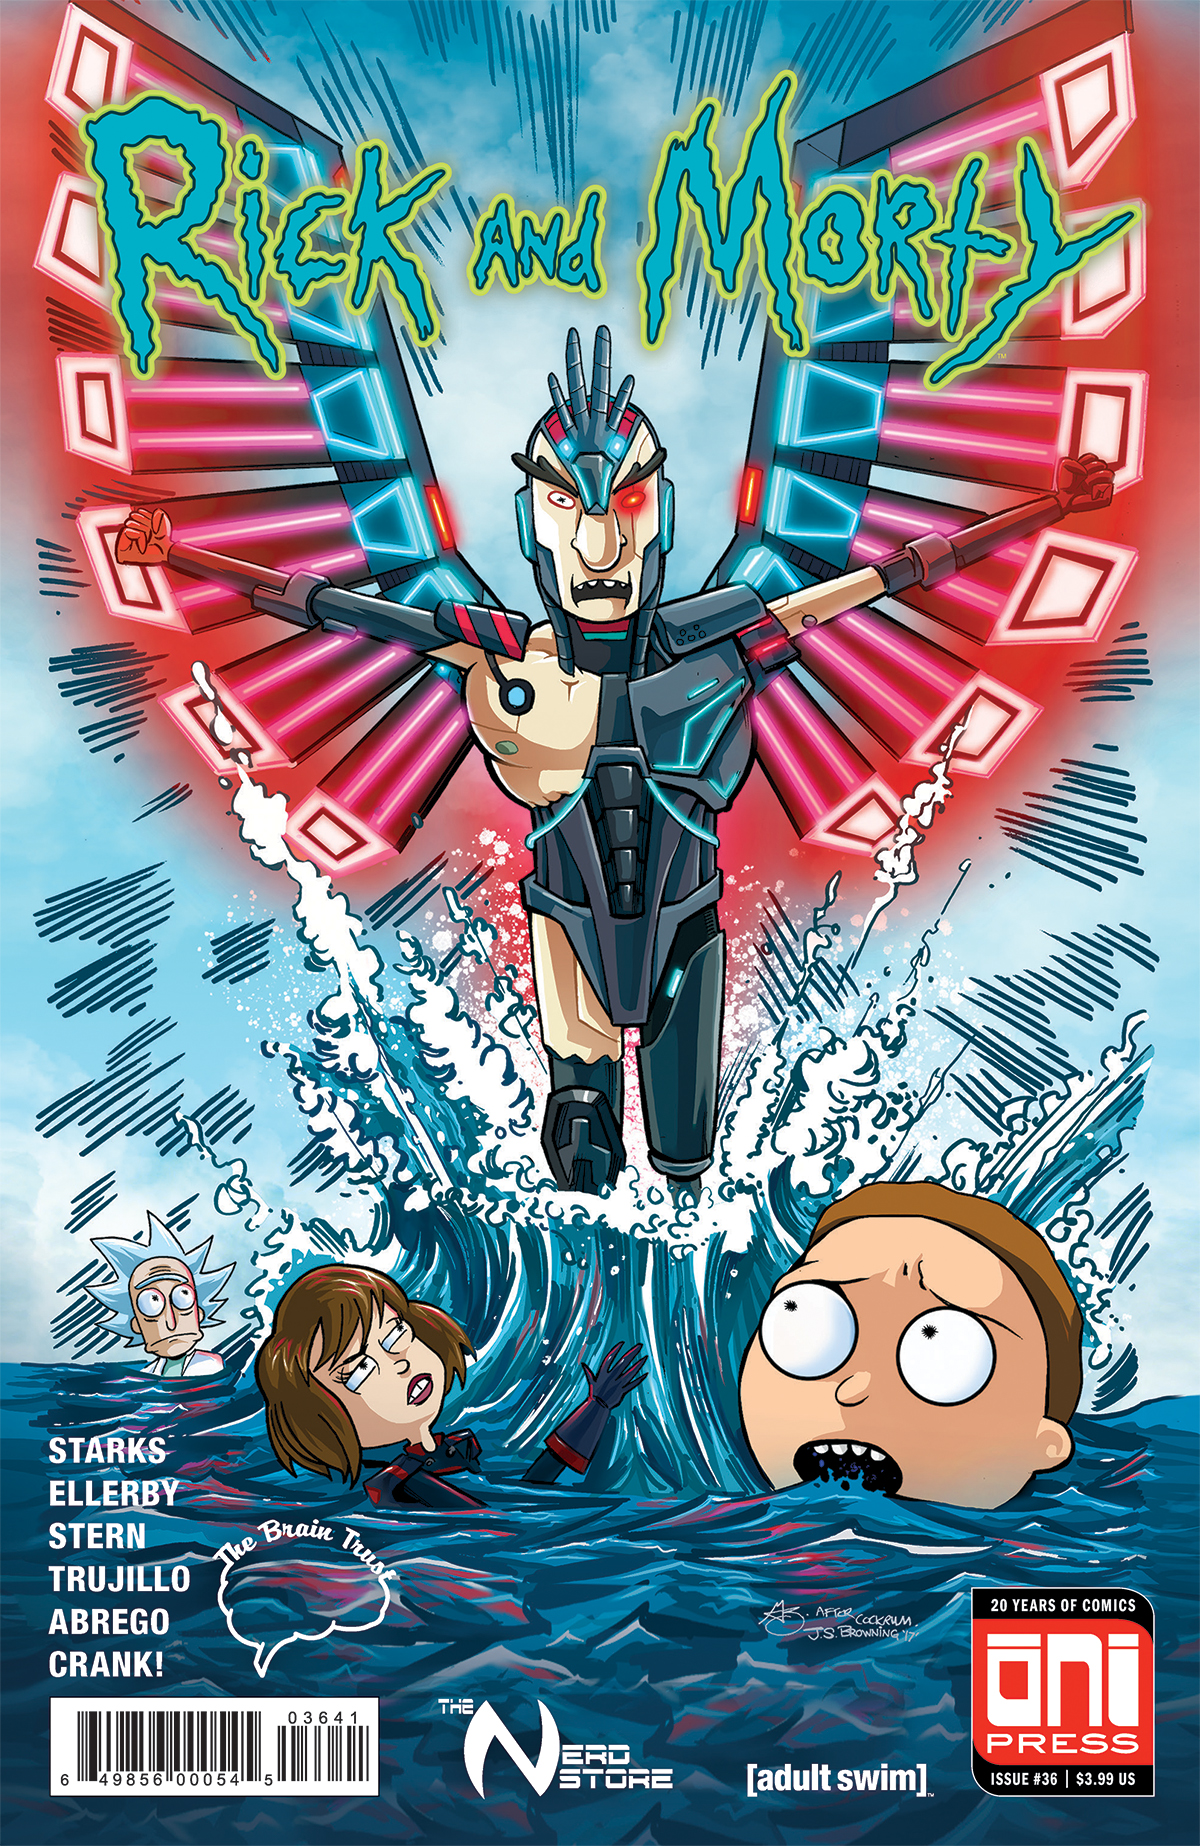 Rick and Morty Issue 36